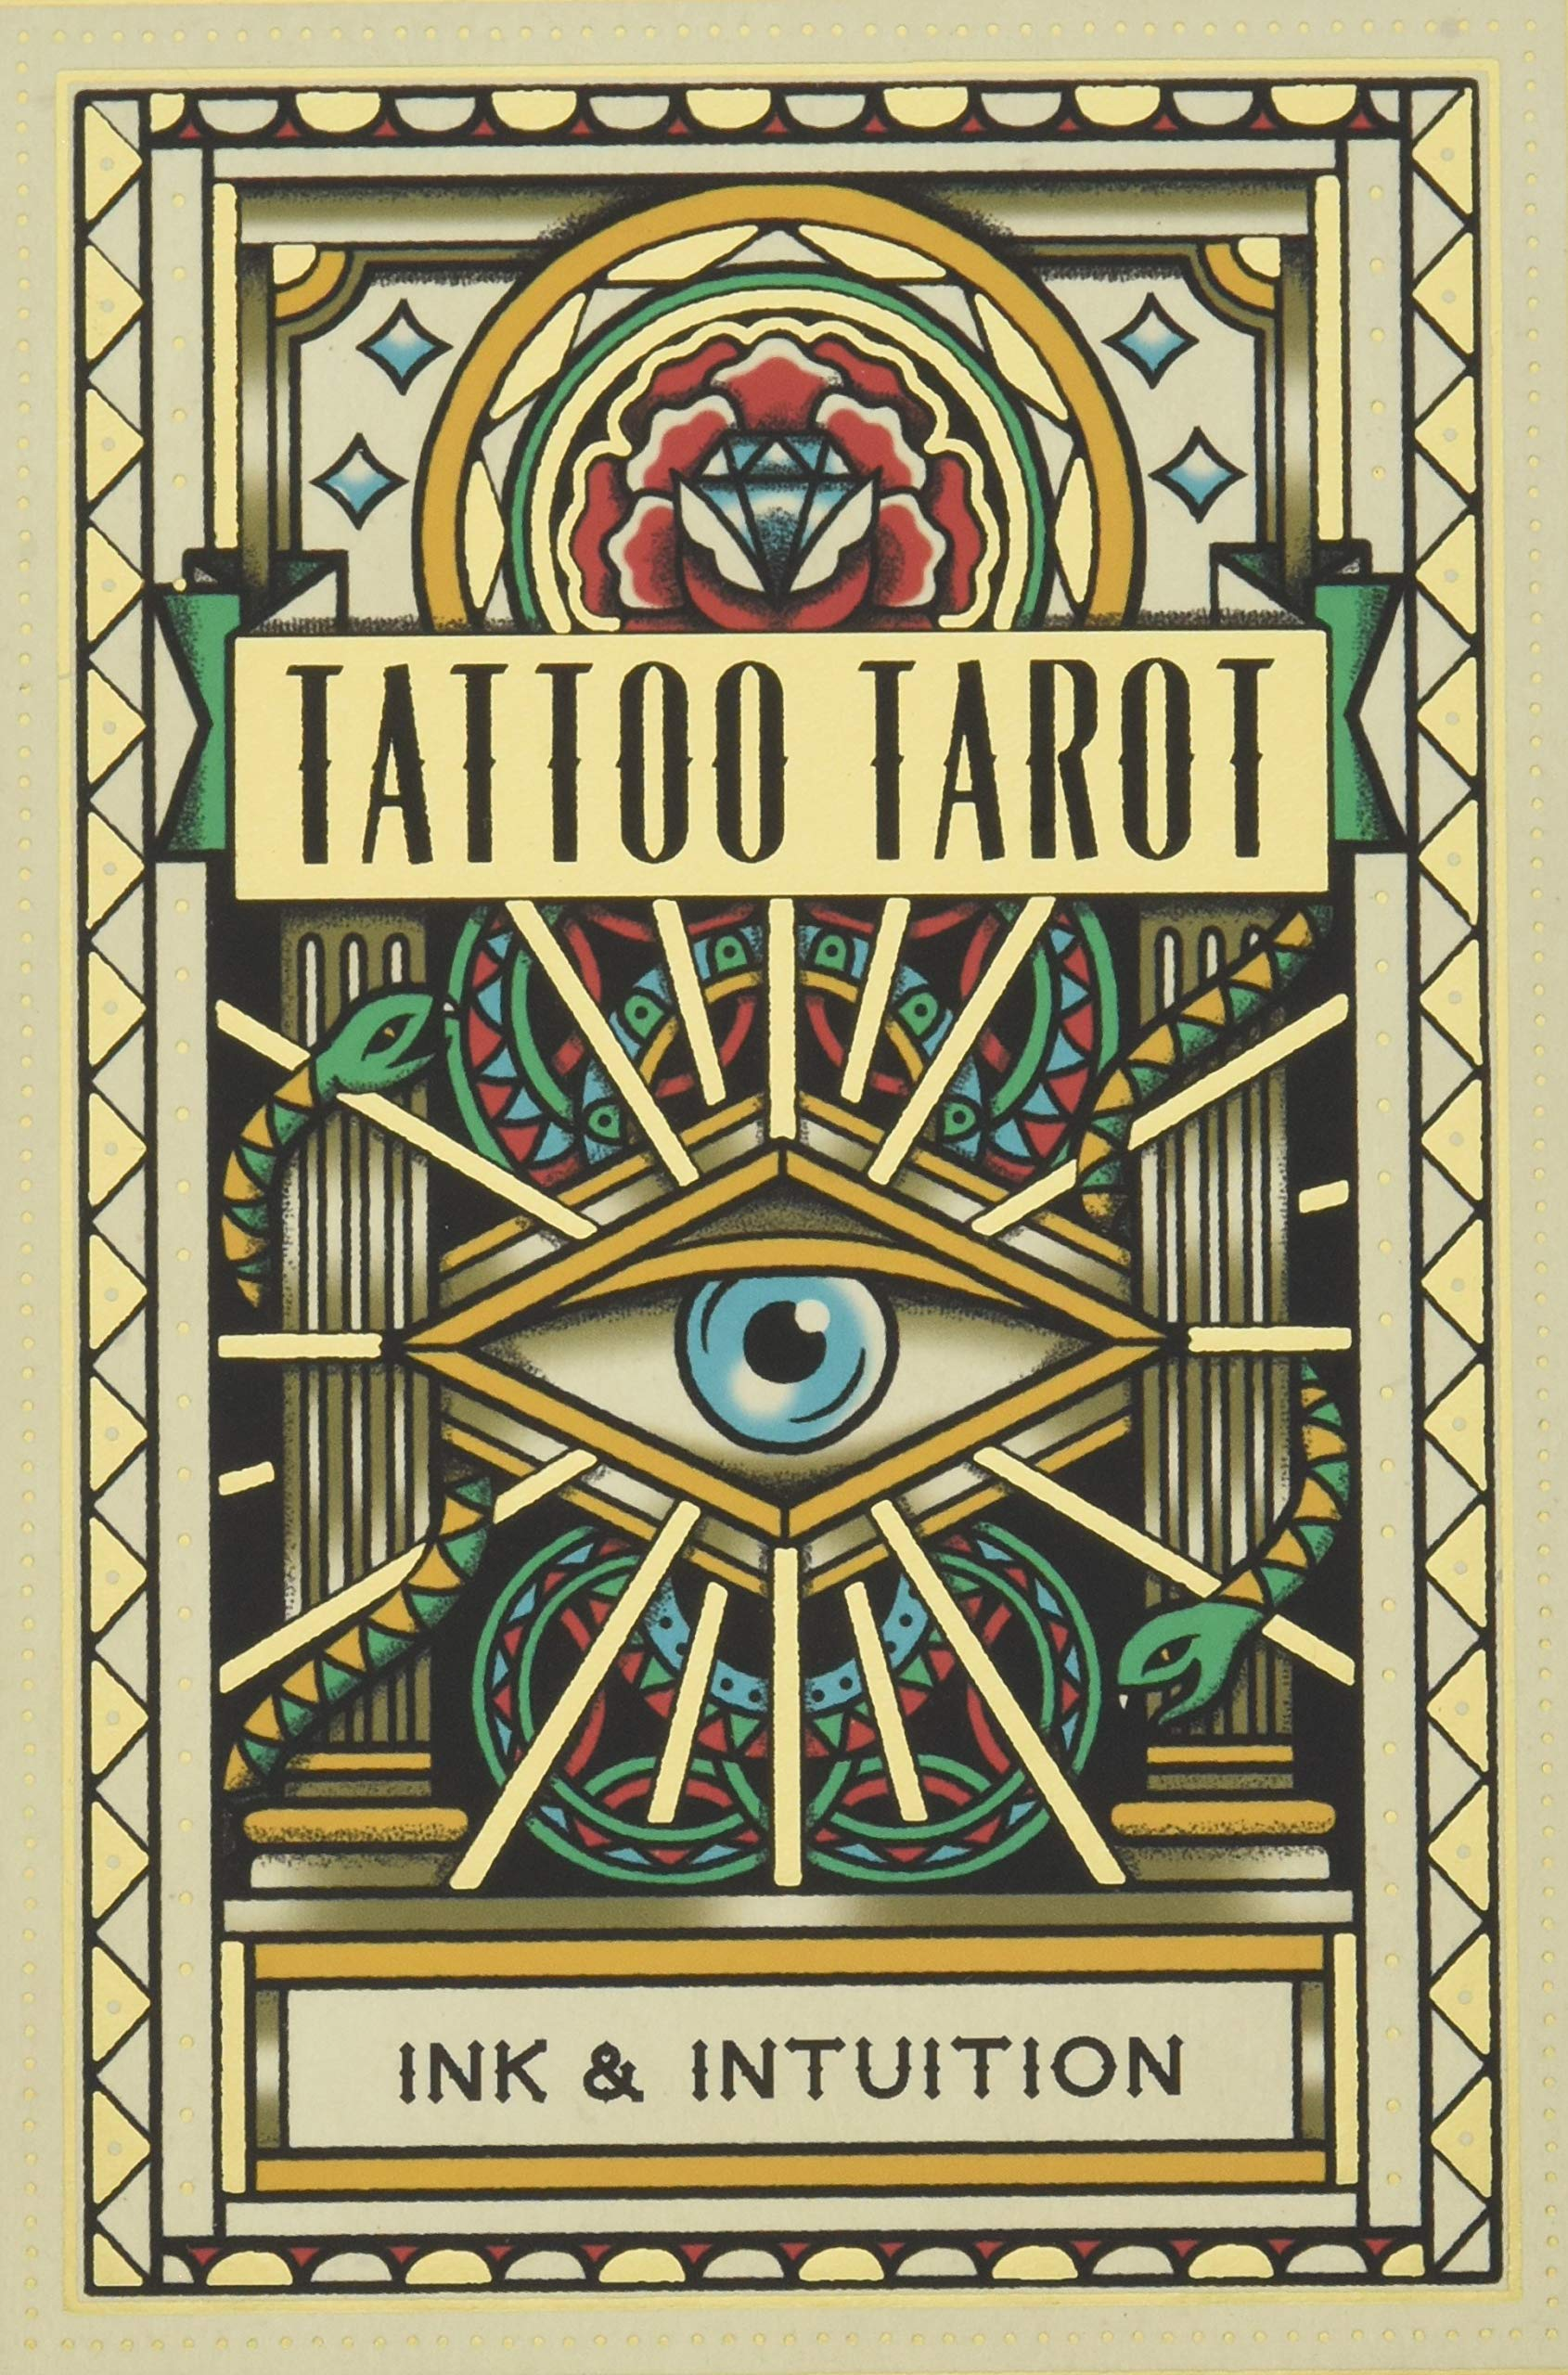 Tattoo Tarot, Ink & Intuition